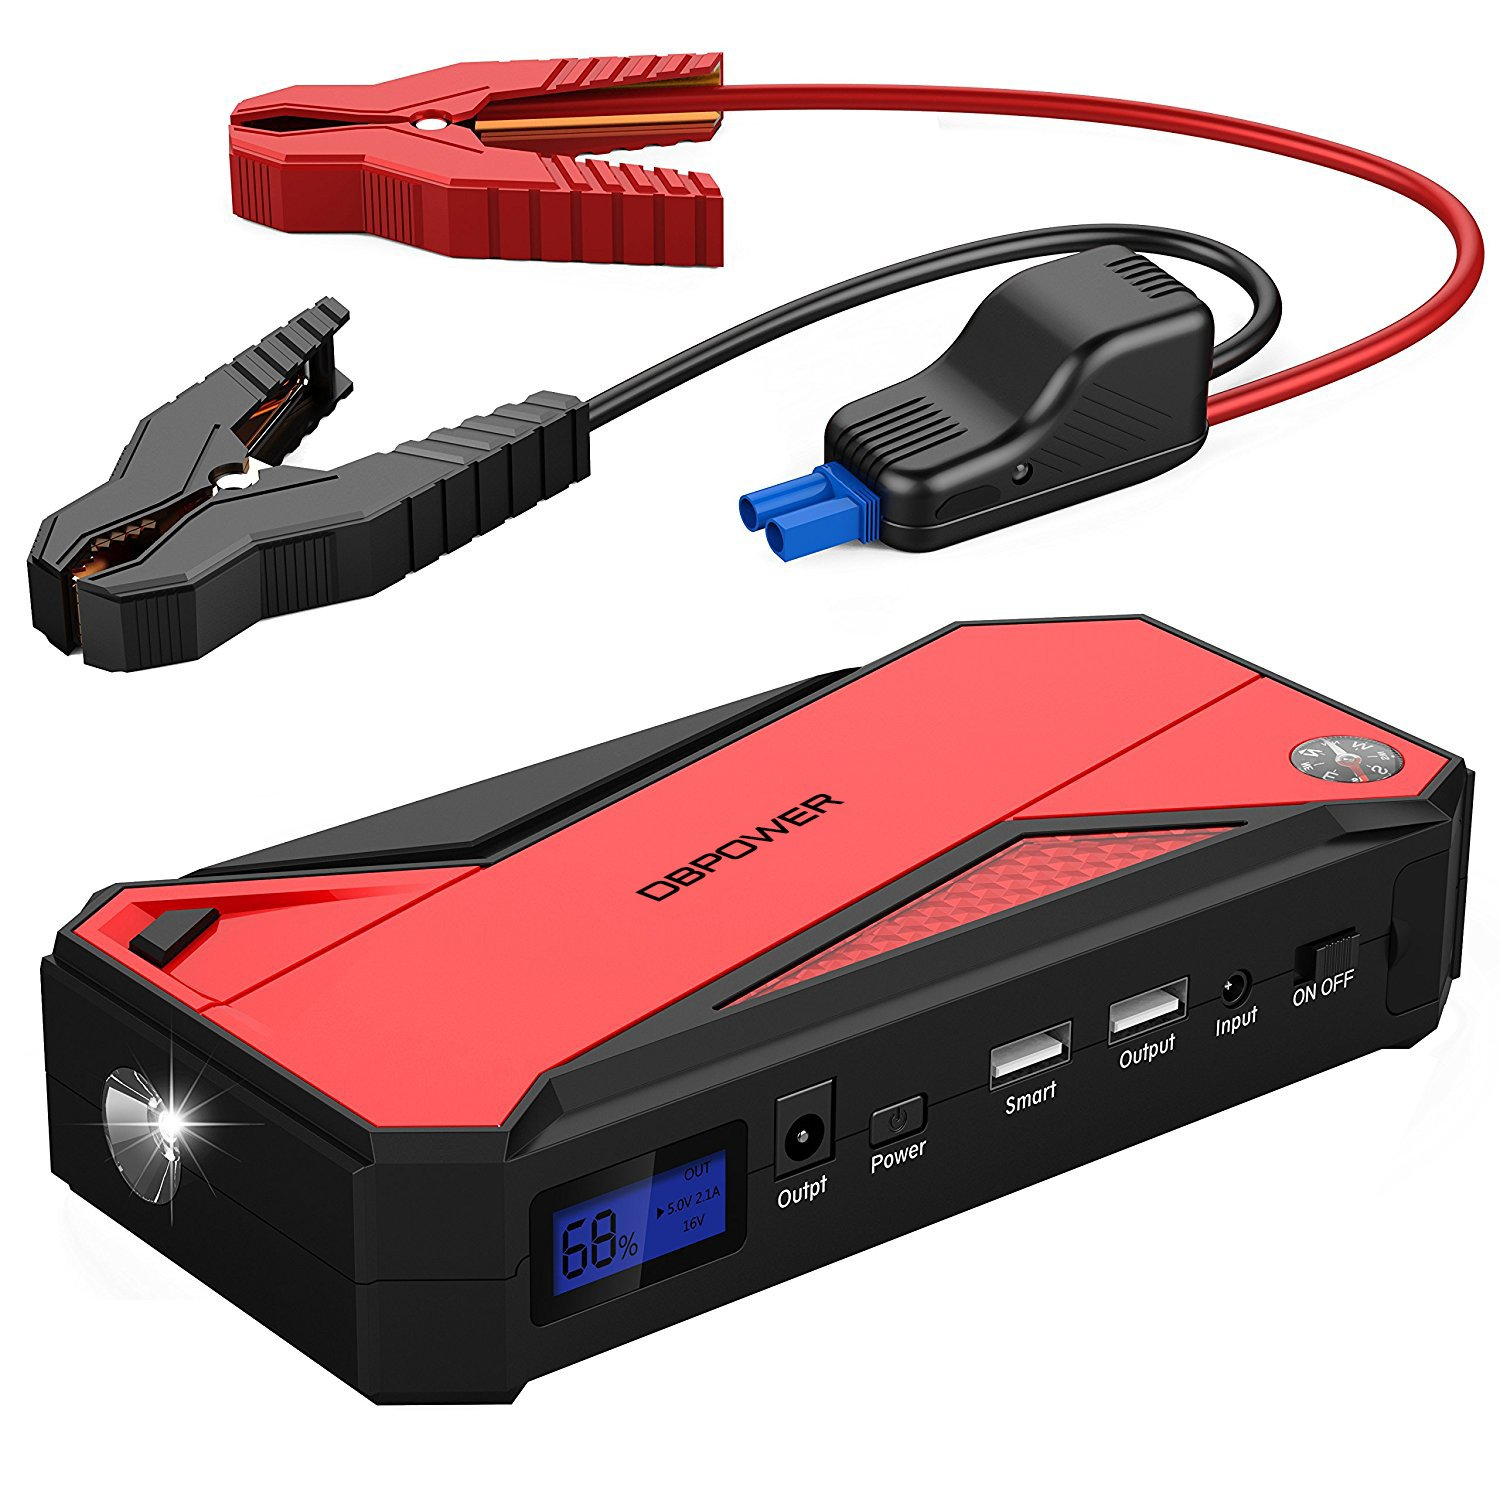 DBPOWER 600A 18000mAh Portable Car Jump Starter, Emergency Battery Booster Pack with Dual USB Charging Outputs, LED Flashlight, and Compass (Black/Red)